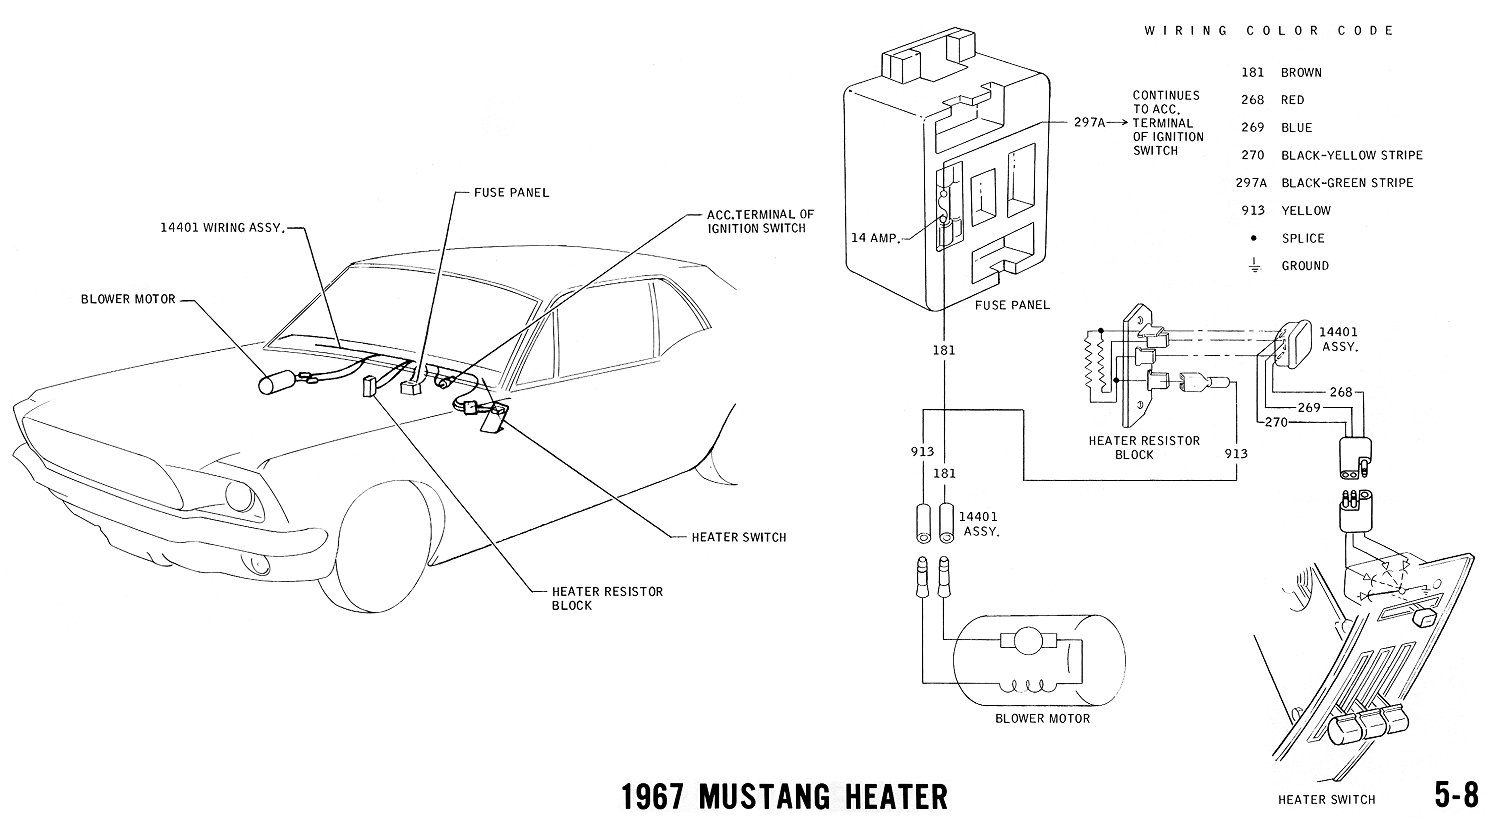 1966 mustang dash light wiring diagram 1999 vw passat engine windshield wiper for ford